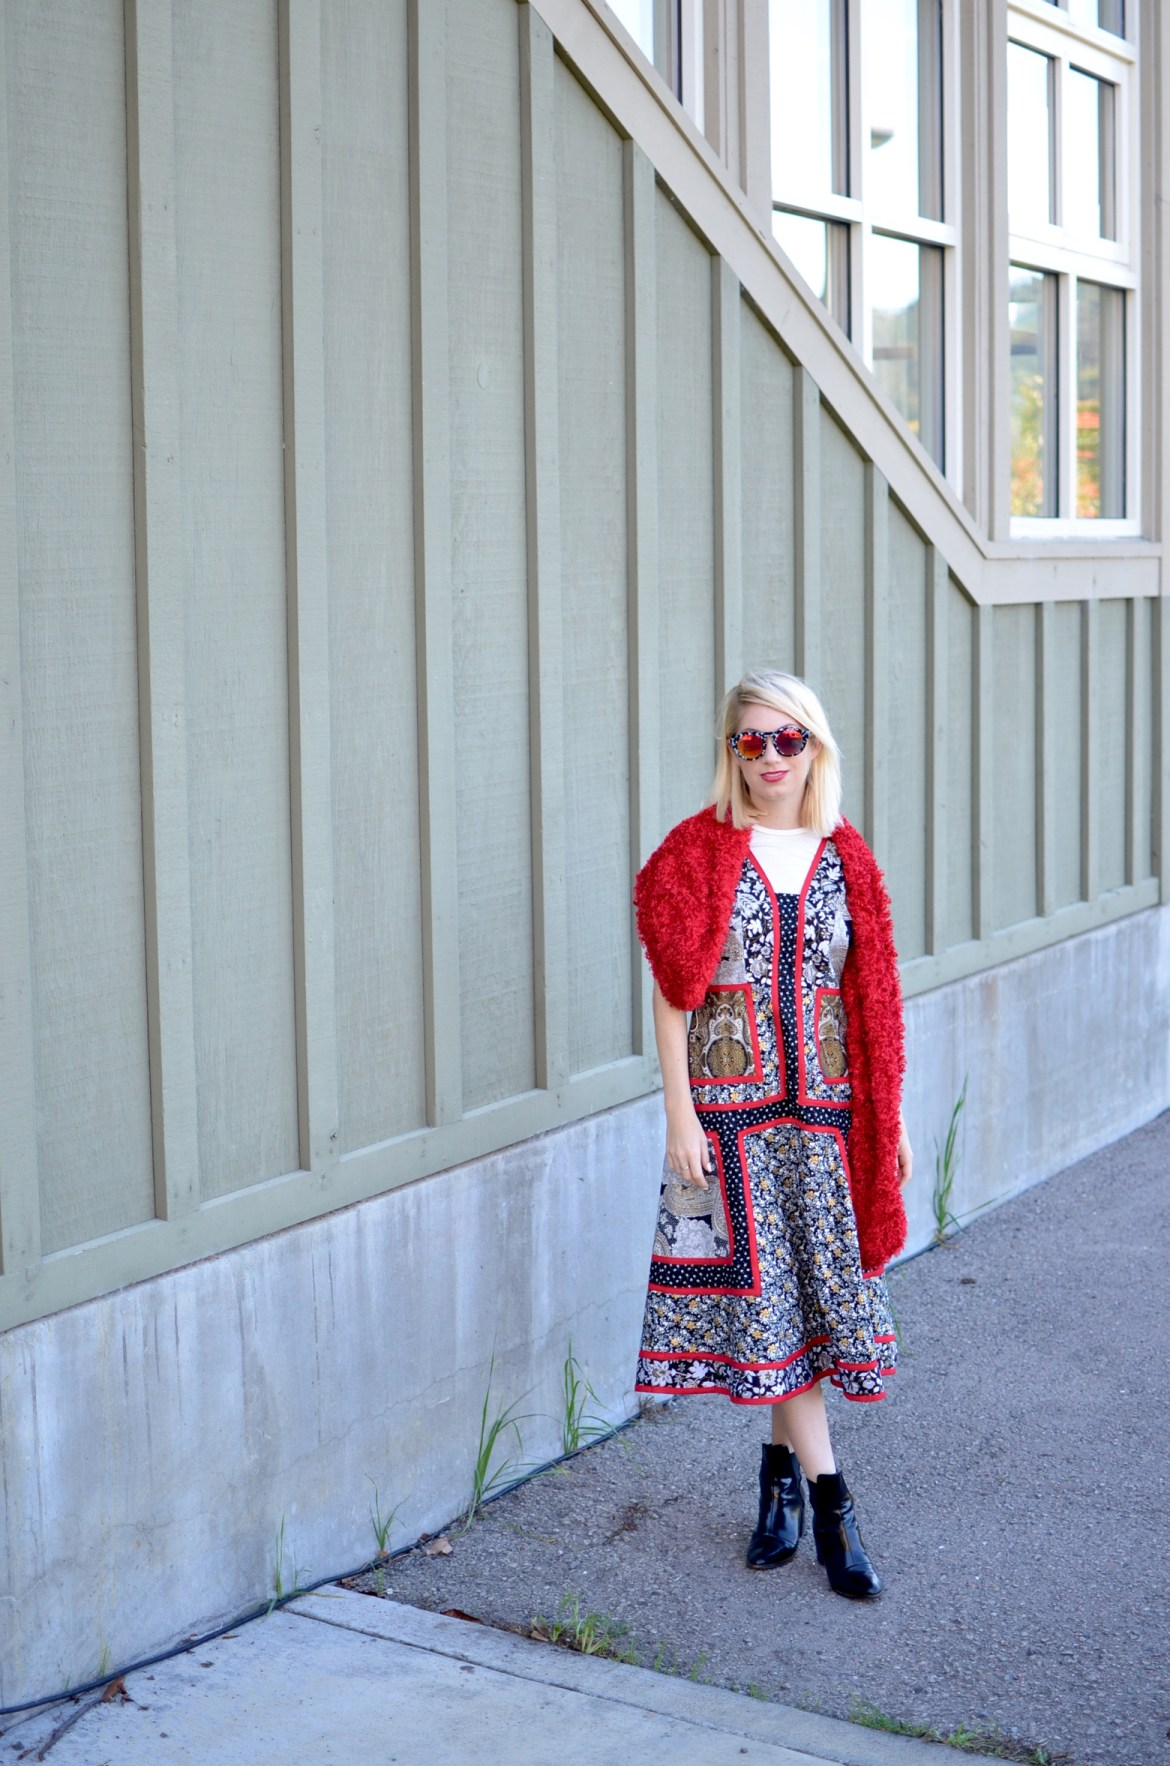 Stefanie makes a mix print red black and white dress with red fur stole for project real way // thestylesafari.com